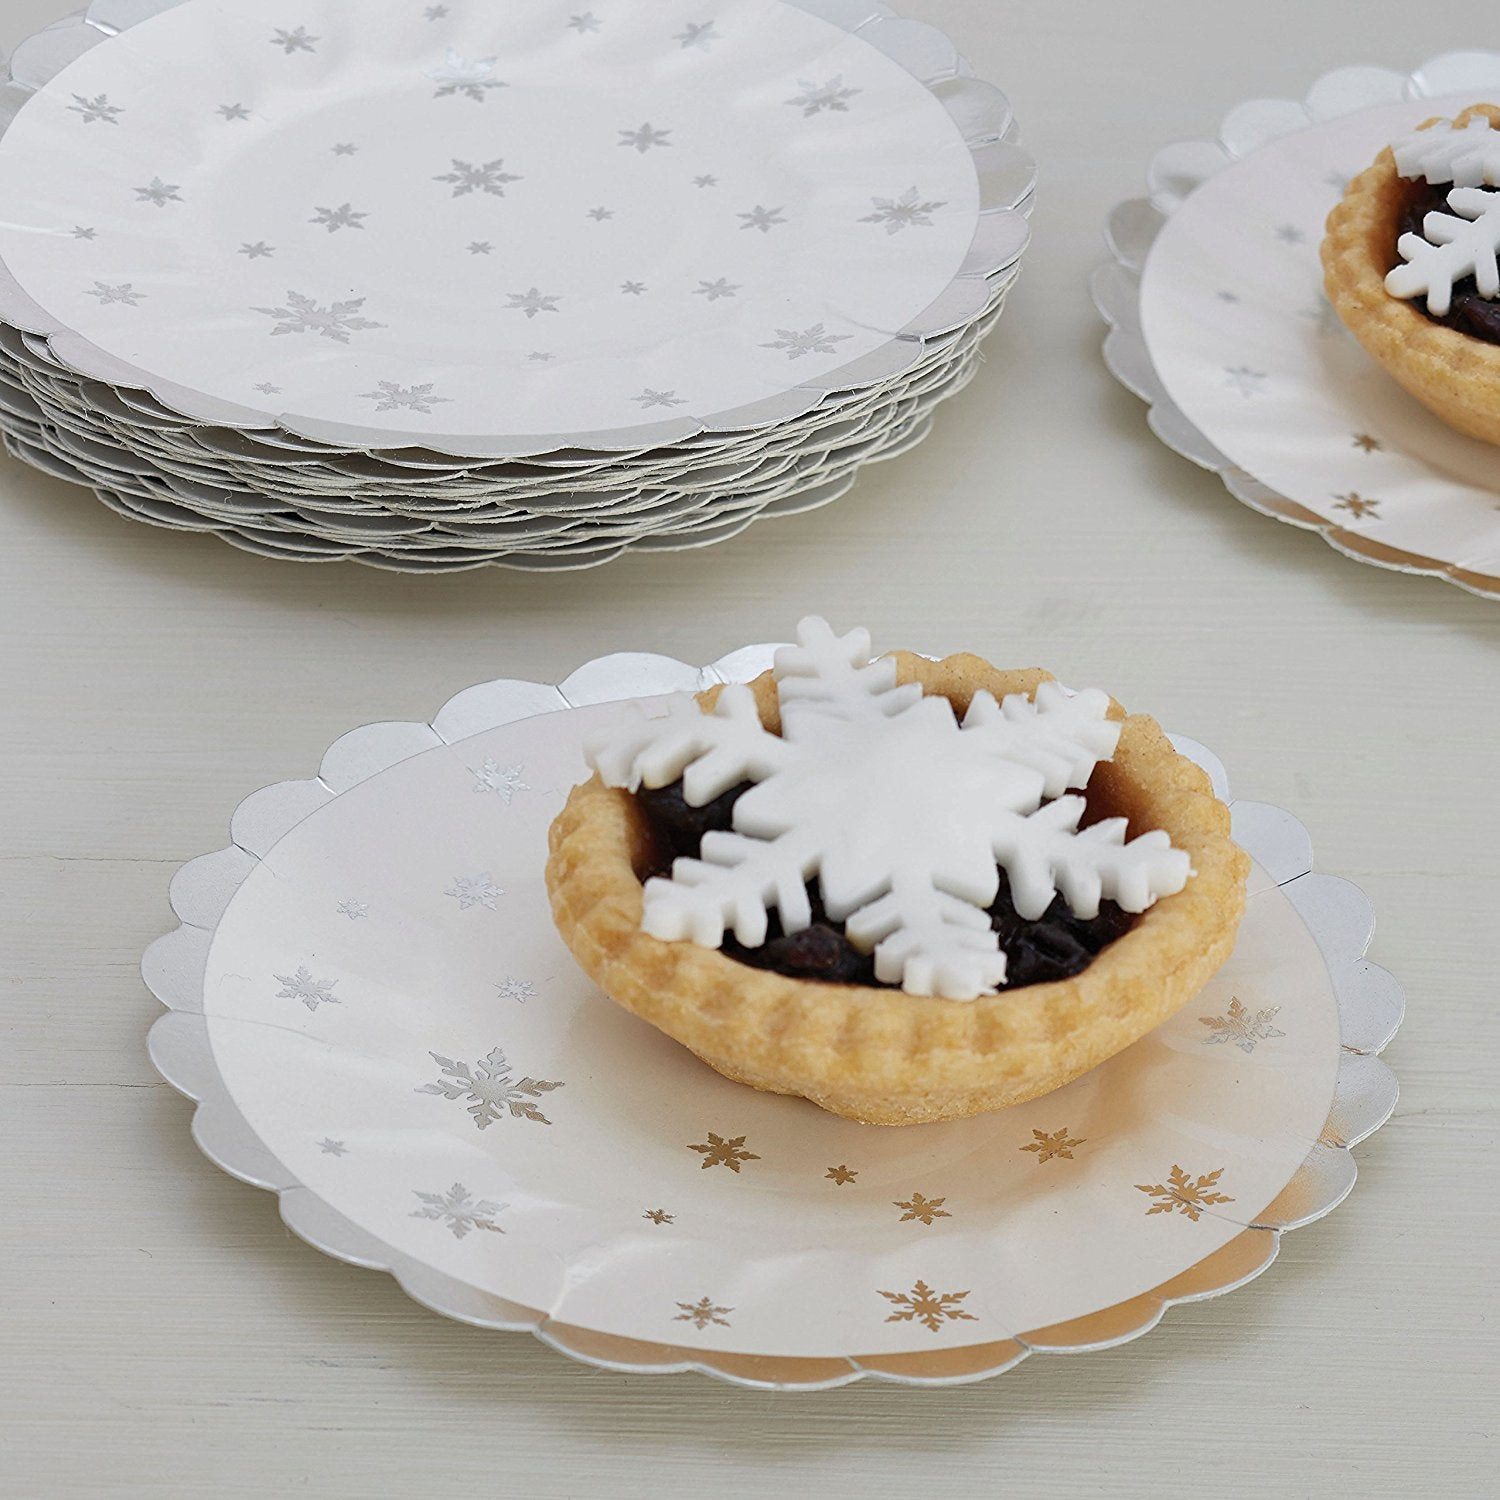 Previous Image Next Image. Mince Pie Plates ...  sc 1 st  Baker and Maker & Mince Pie Plates: Silver with White Snowflakes - Pack of 8   Baker ...